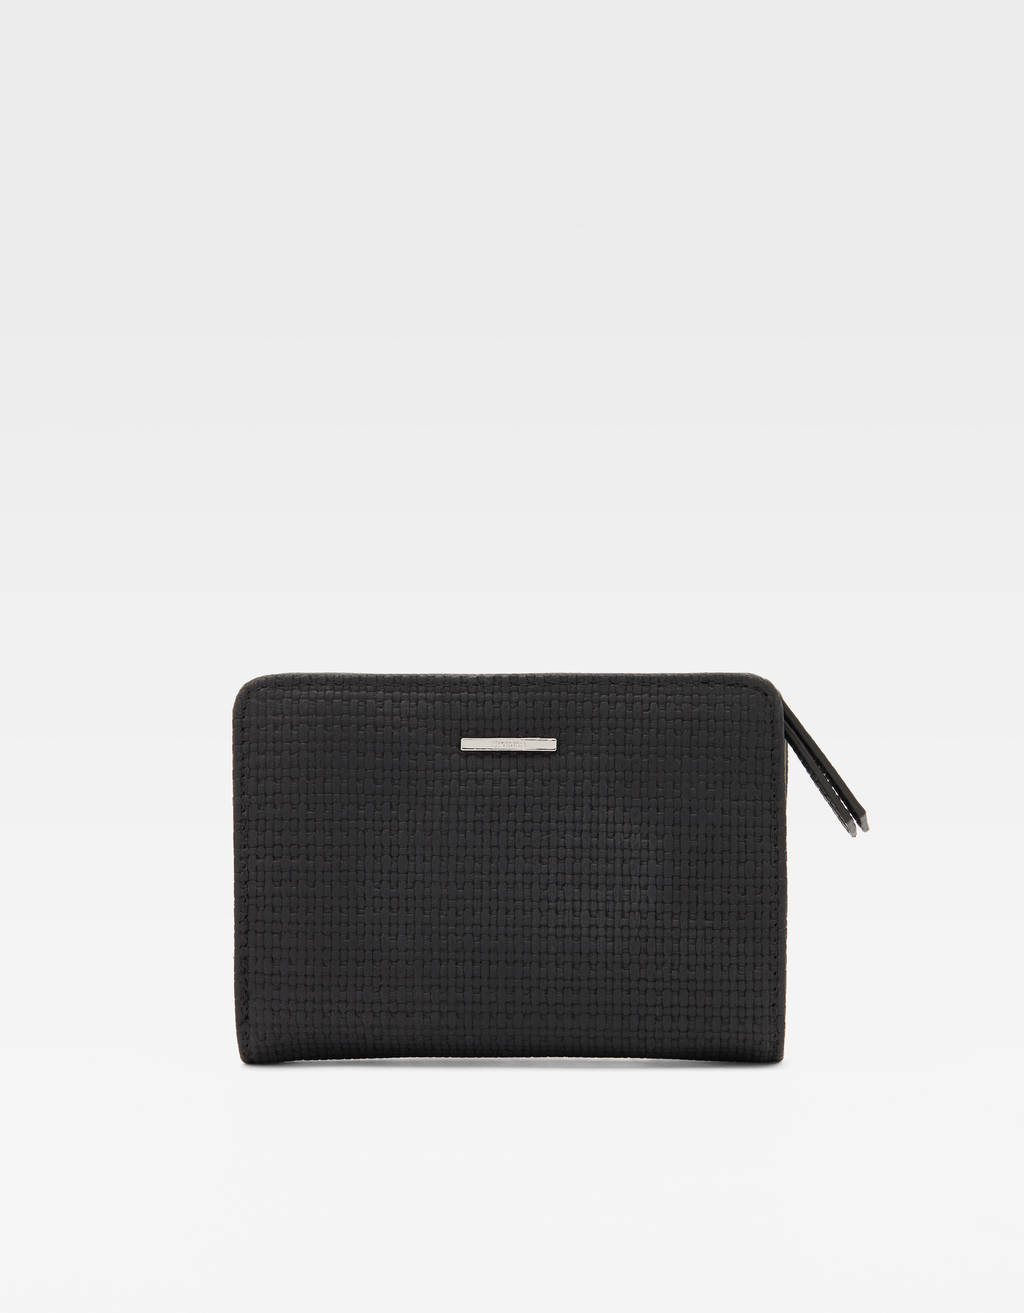 Square Purse With Detailing by Bershka